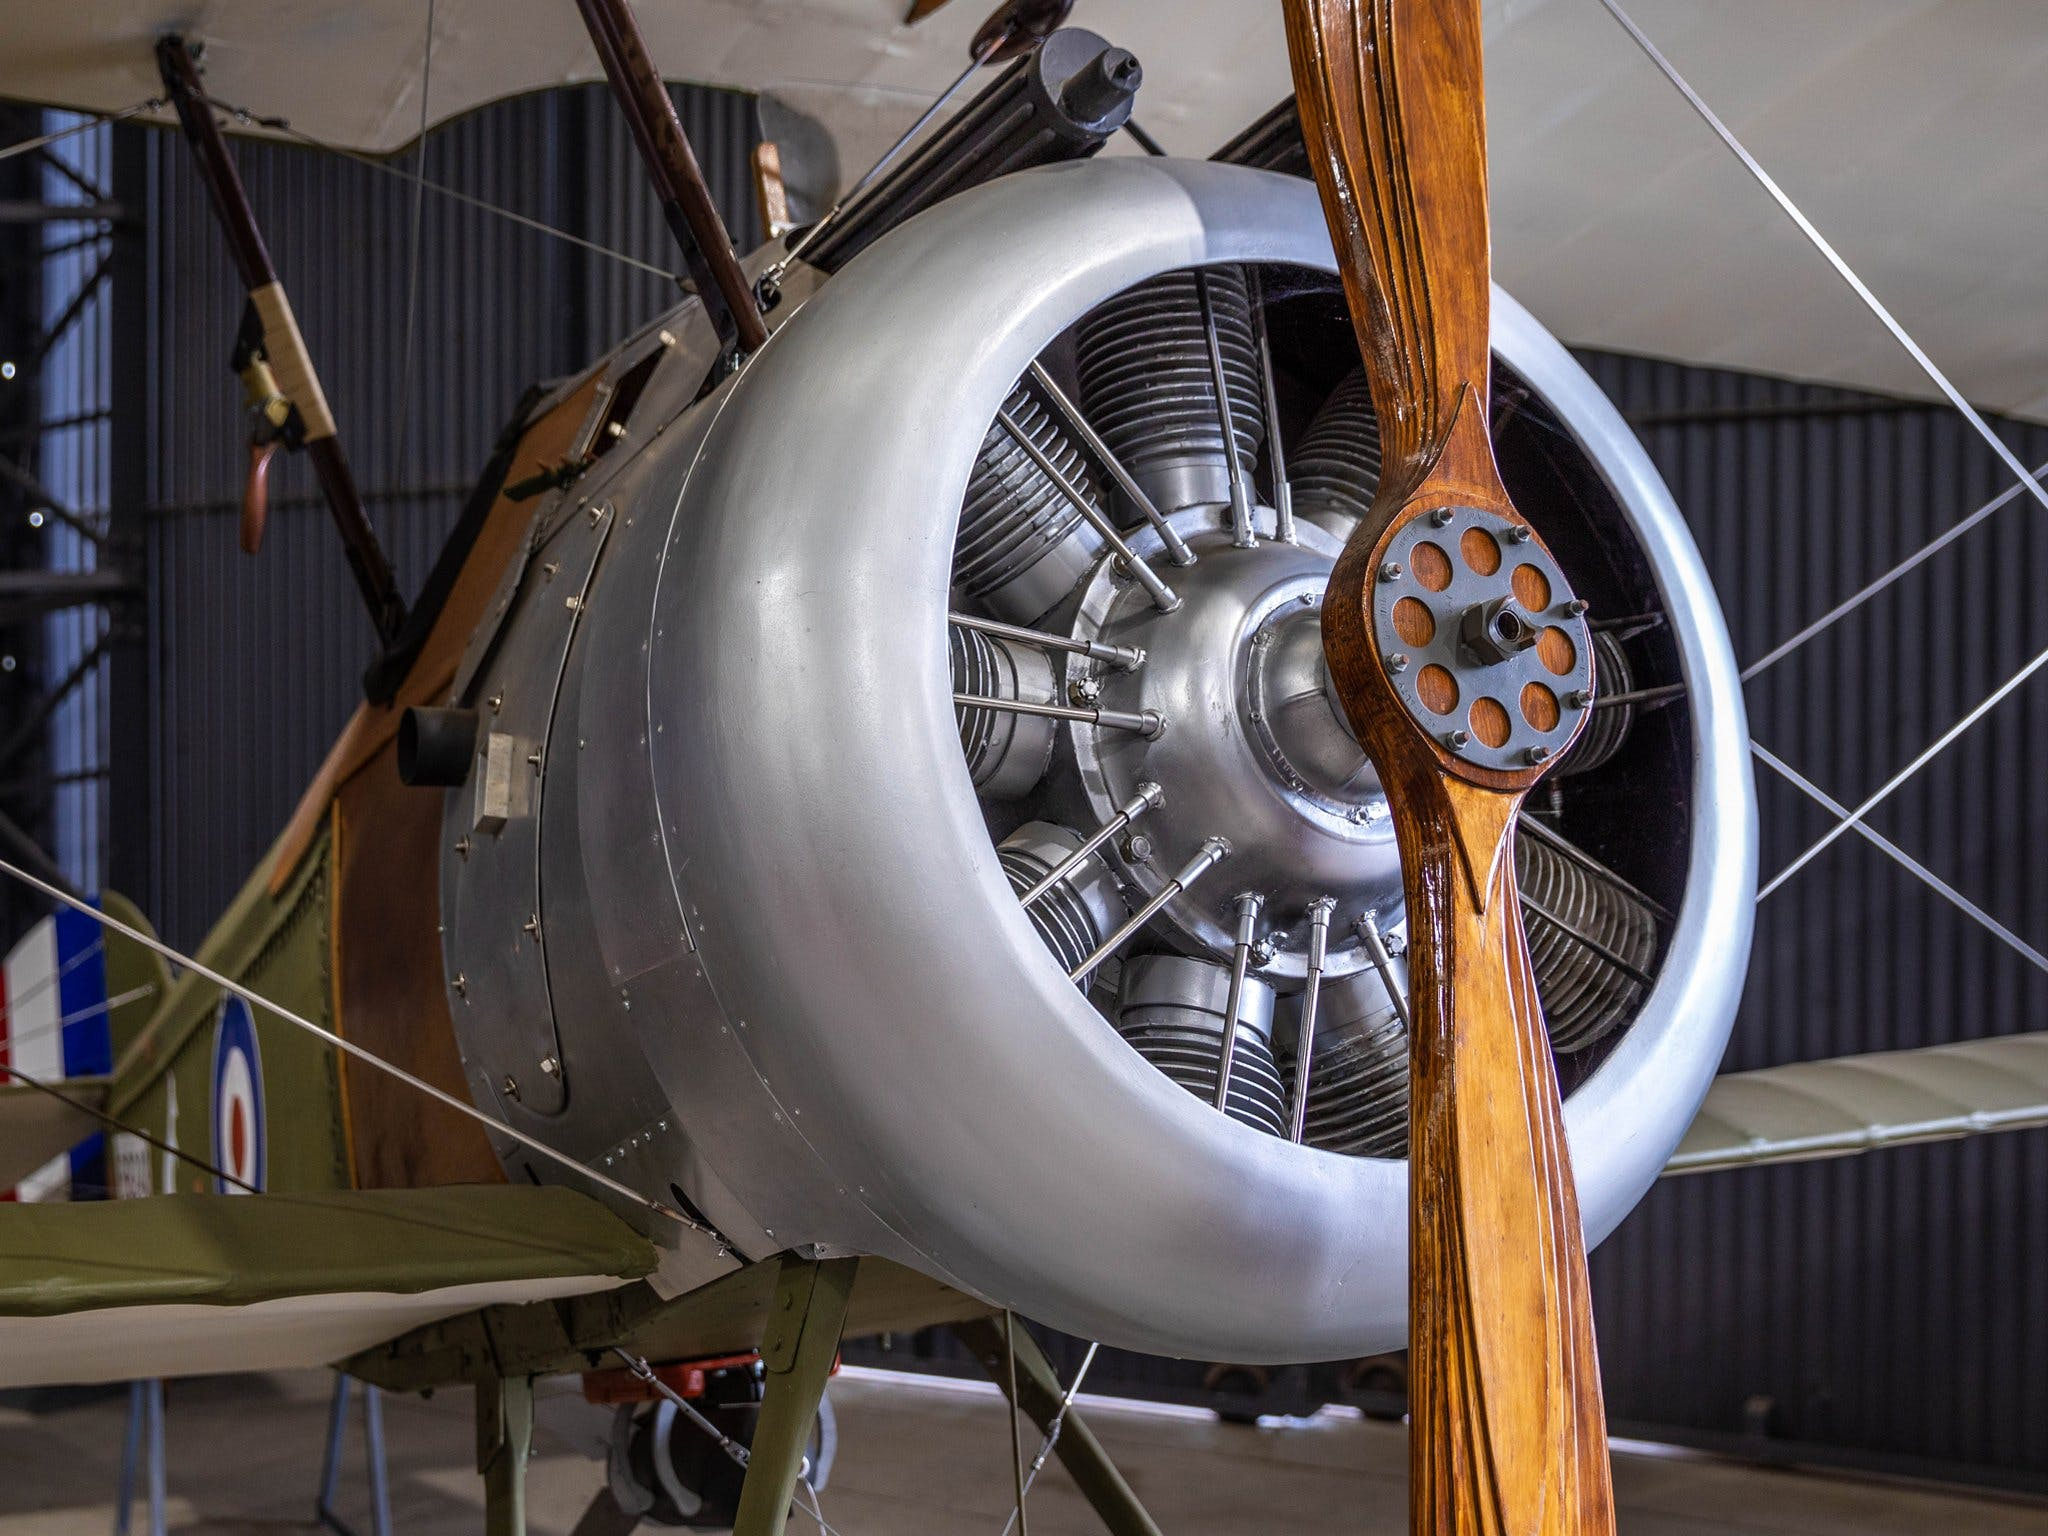 RAAF Amberley Aviation Heritage Centre - Accommodation Sunshine Coast